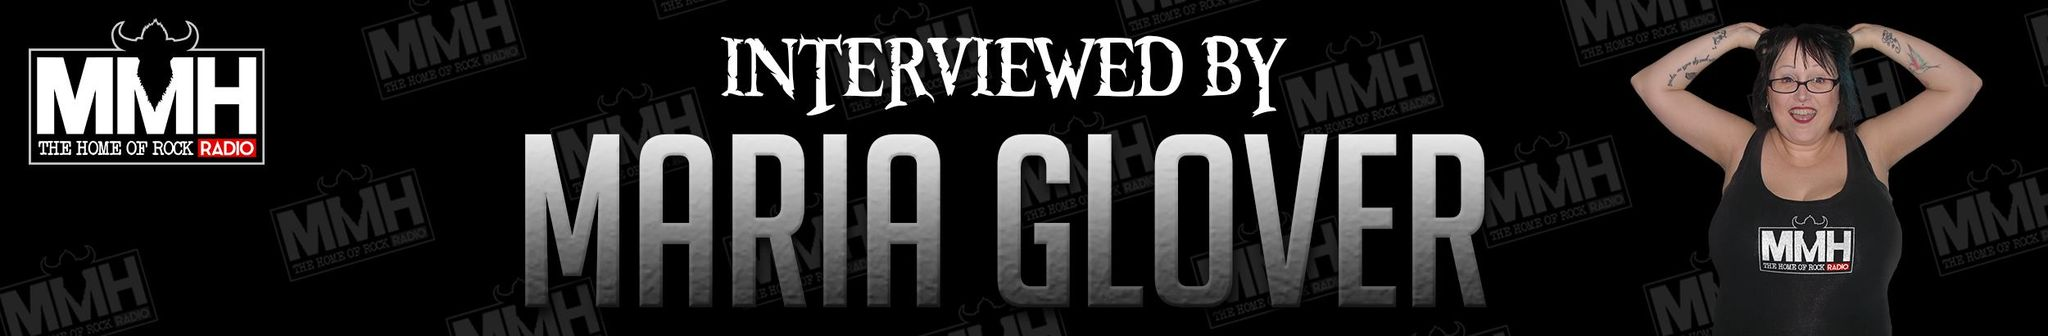 Interview by MG